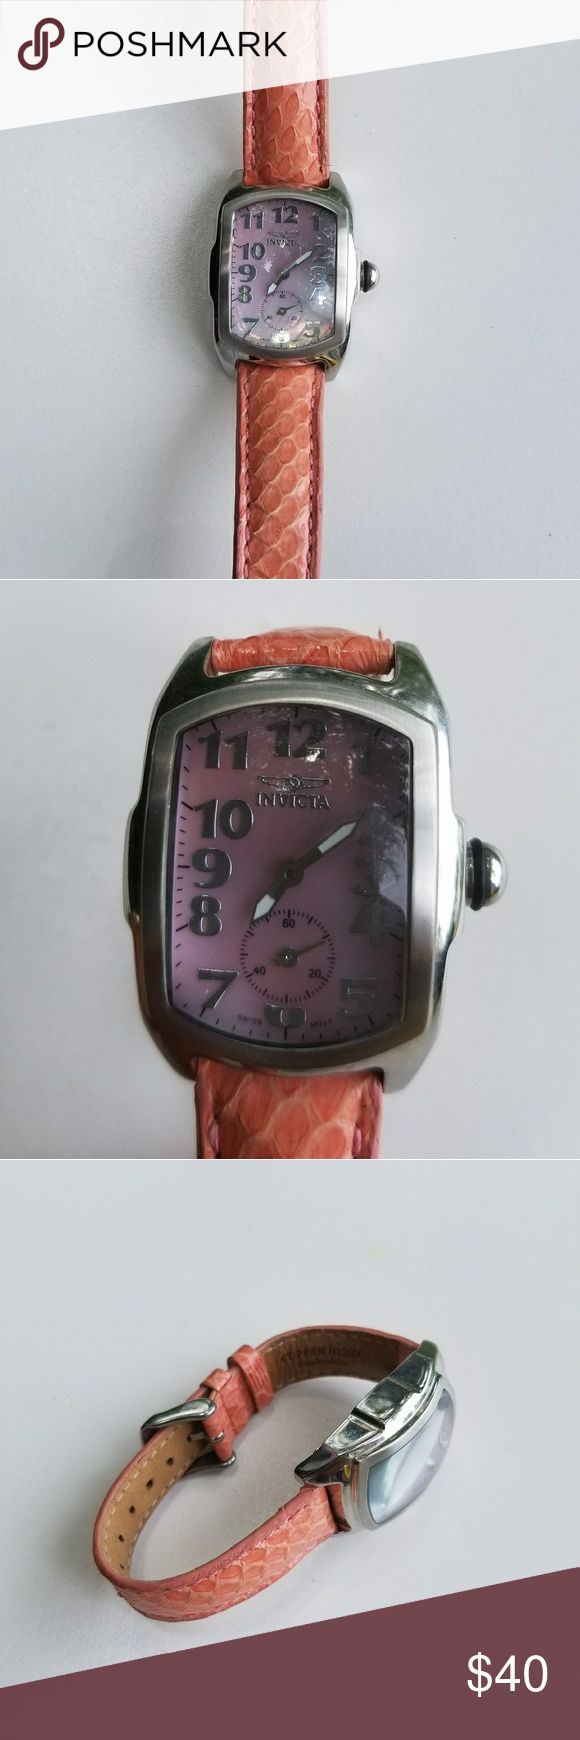 Ladies Invicta Watch Cute but durable pink ladies watch with copperhead snakeskin strap worn twice. Needs battery, reflected in asking price. Sure to be a watch to wear for many years to come Invicta Accessories Watches